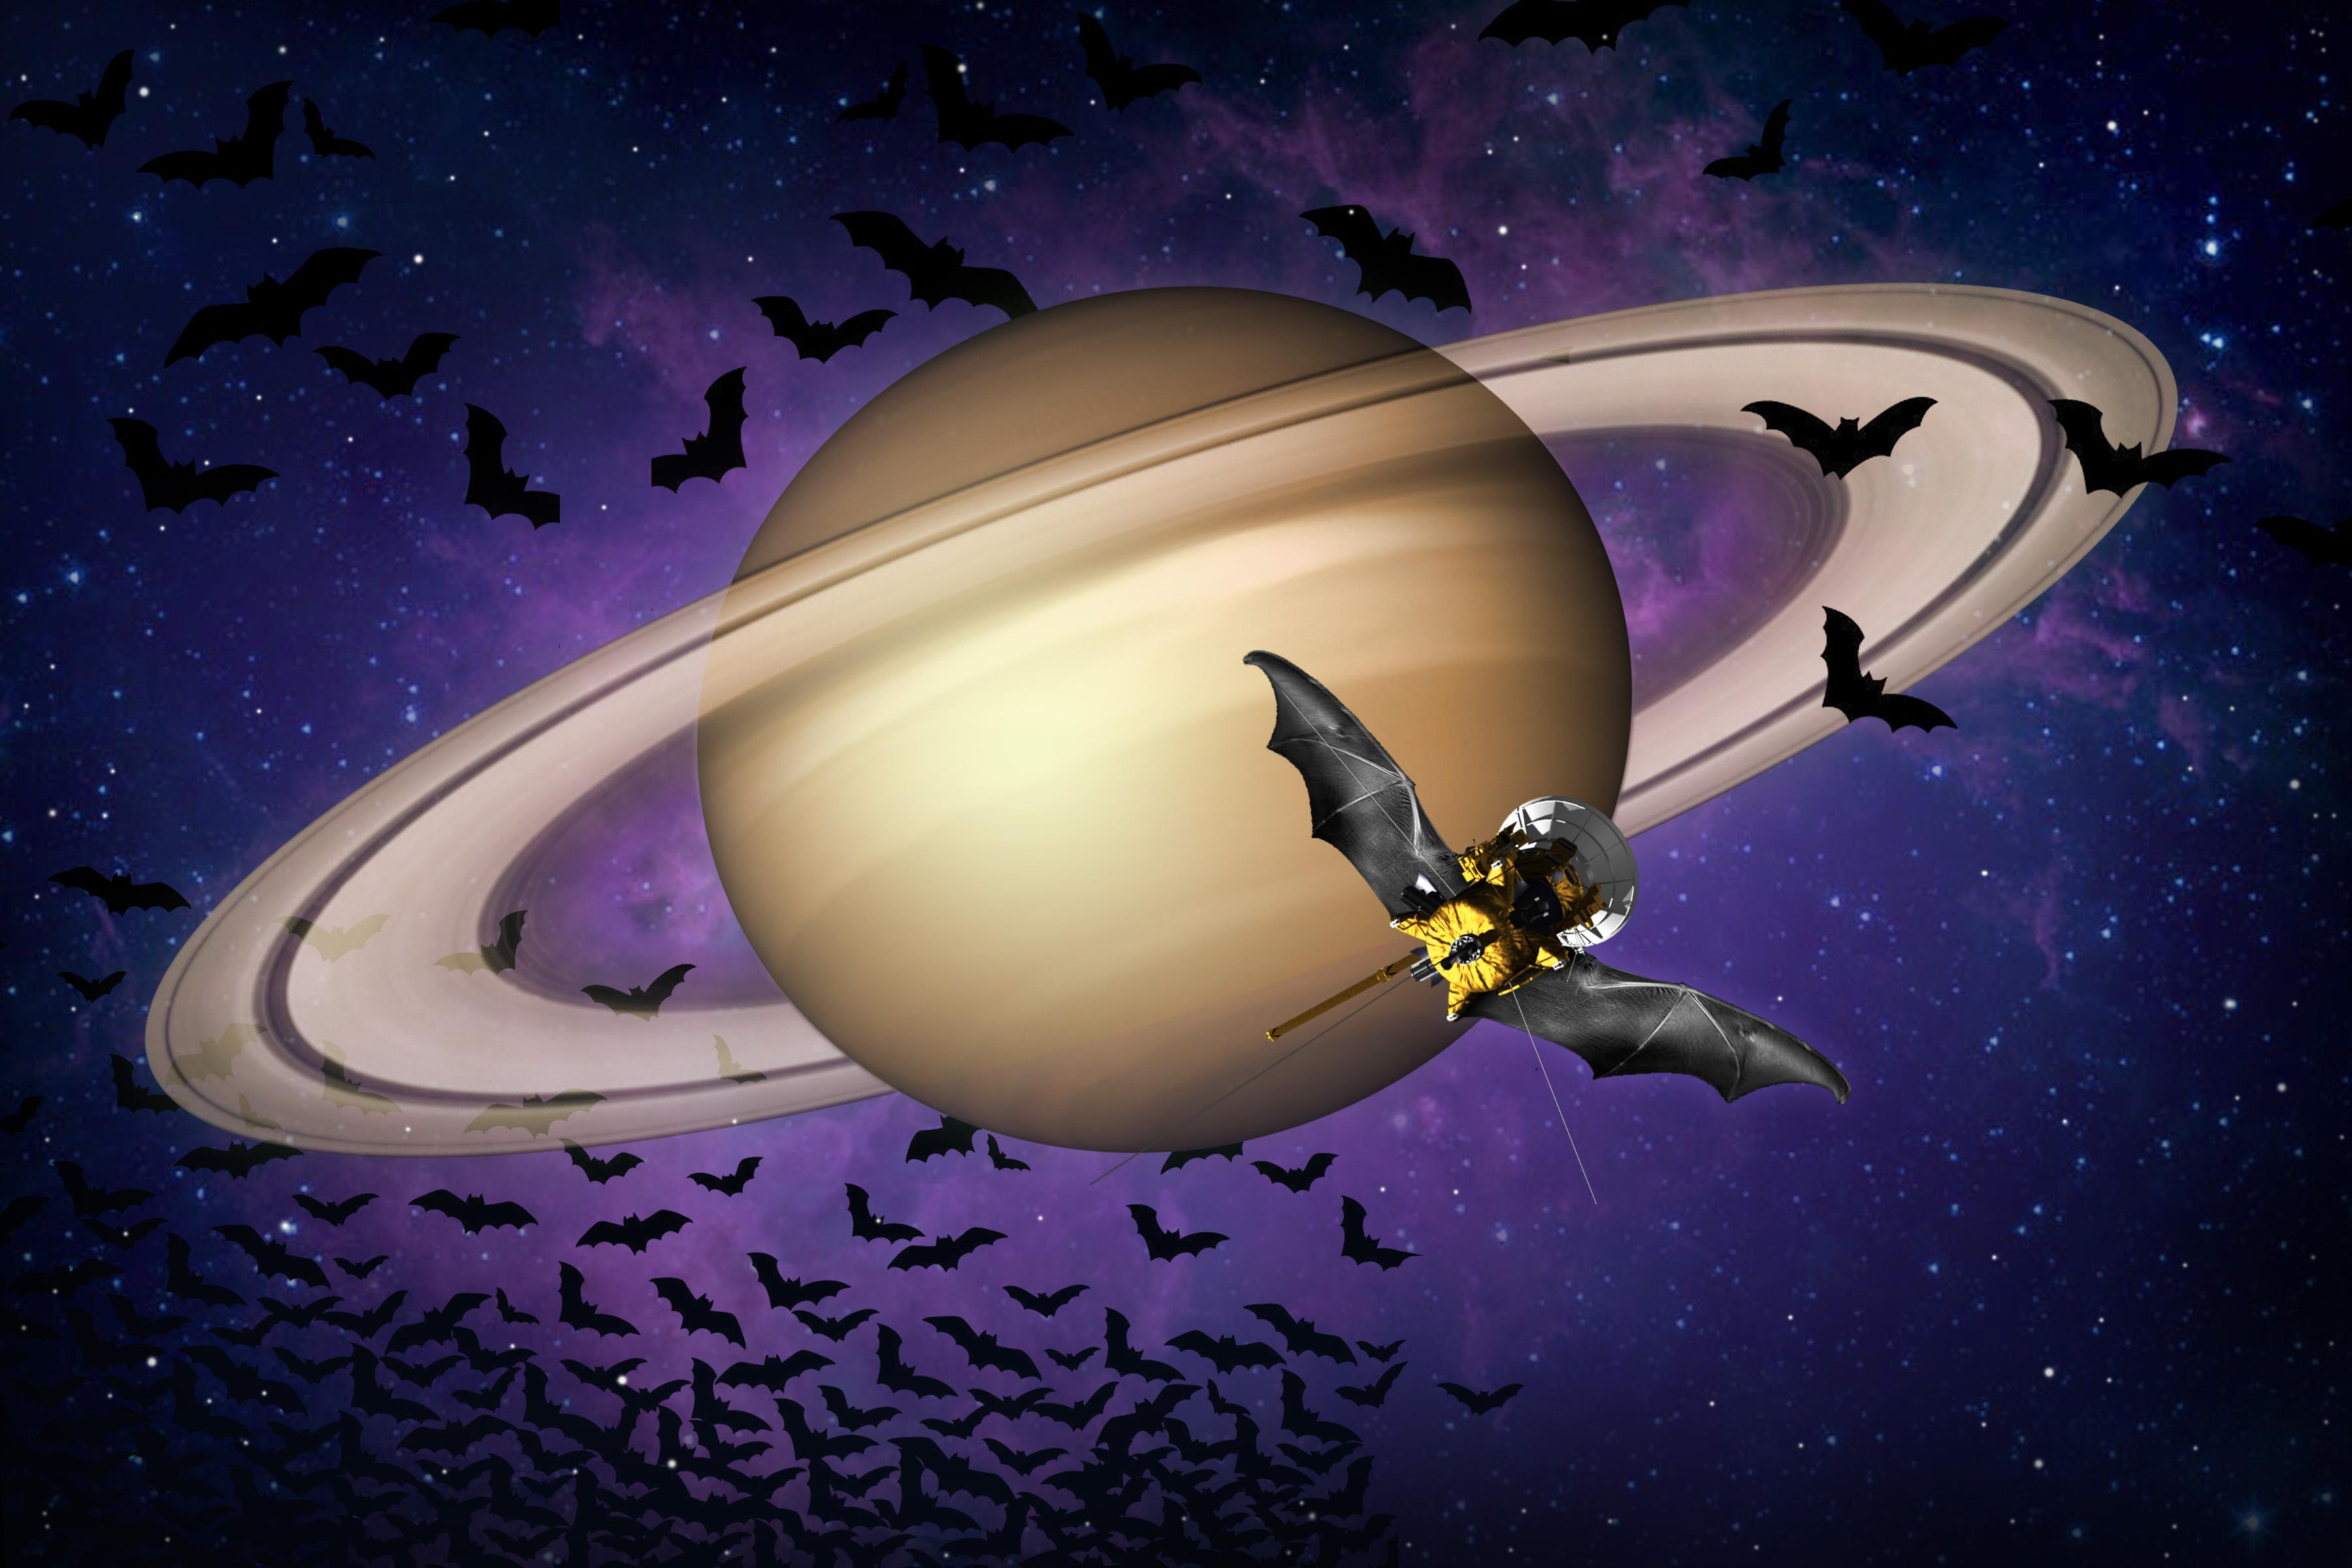 Cassini spacecraft illustrated with bat wings.